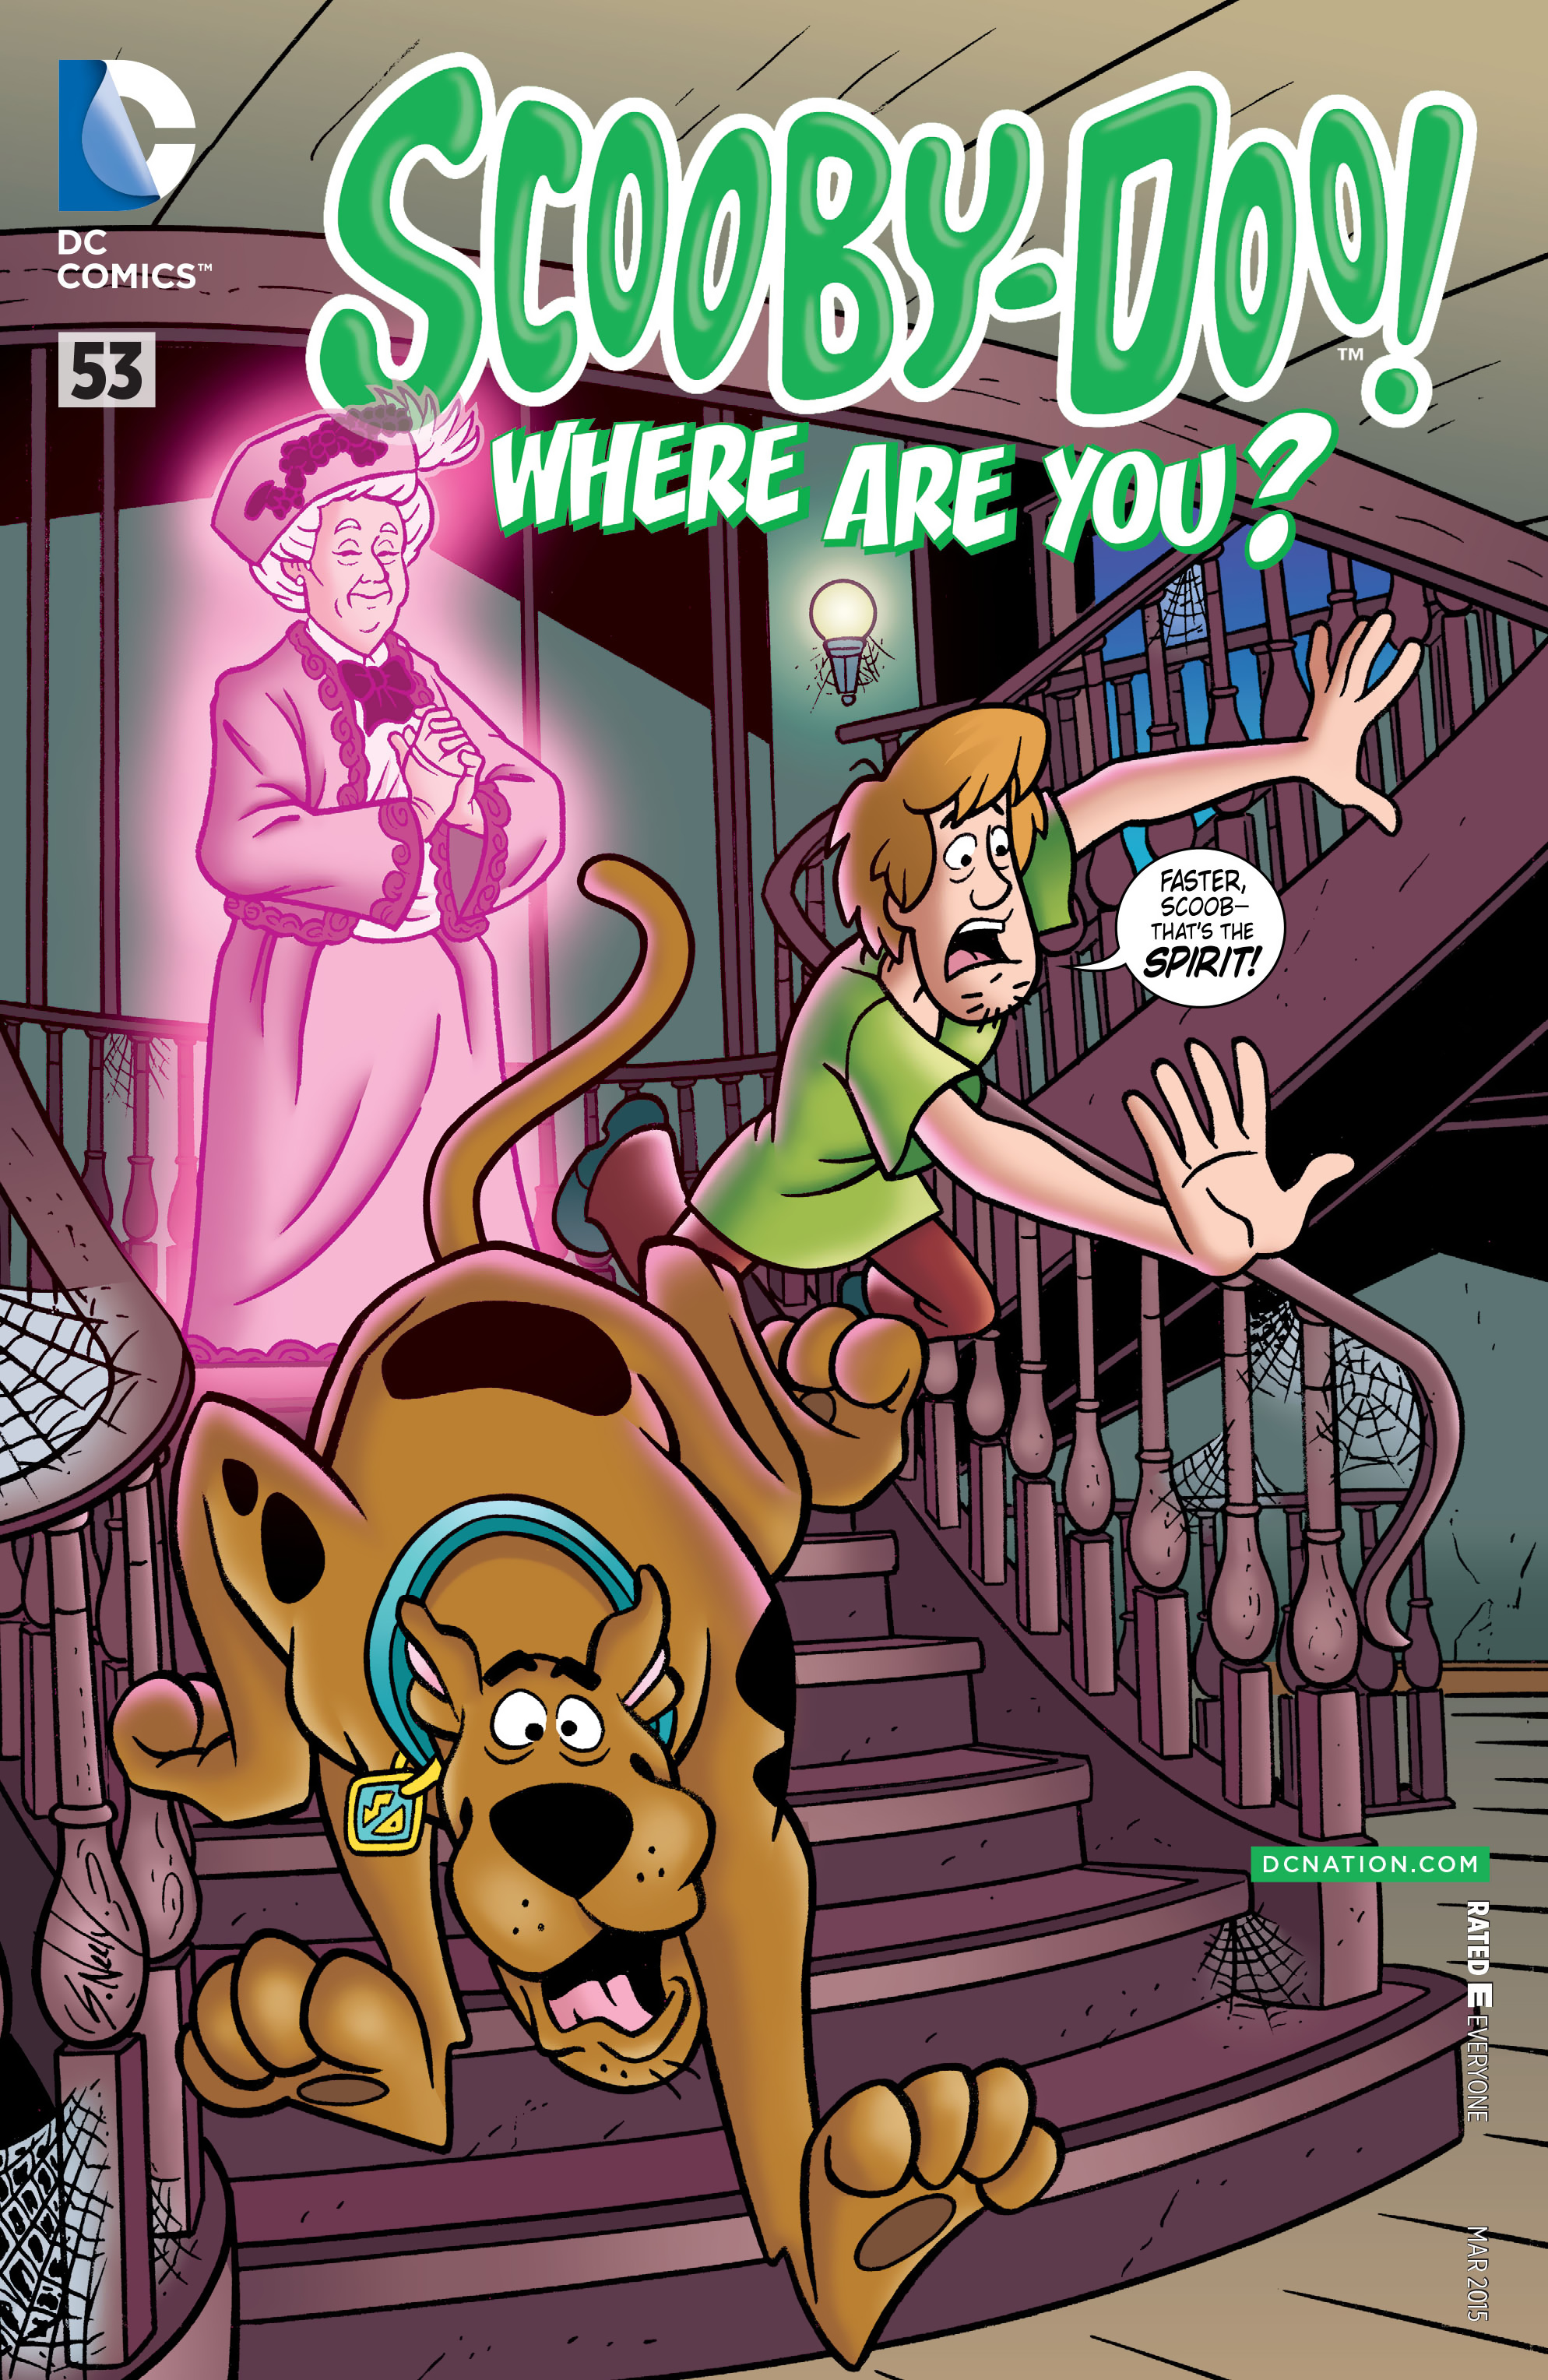 Read online Scooby-Doo: Where Are You? comic -  Issue #53 - 1